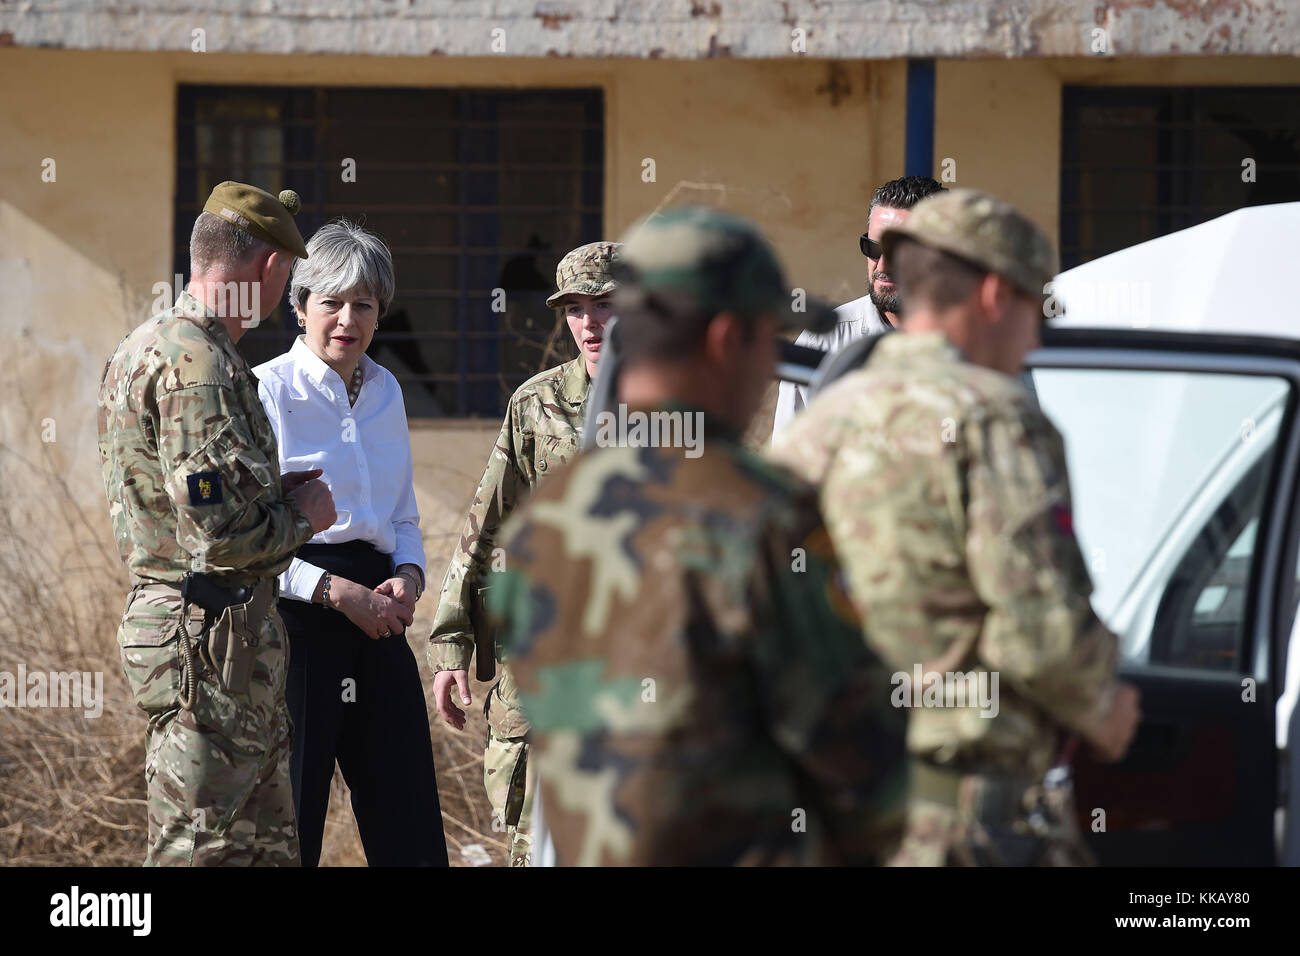 Prime Minister Theresa May meets British troops training Iraqi security forces at Camp Taji near Baghdad, Iraq, - Stock Image